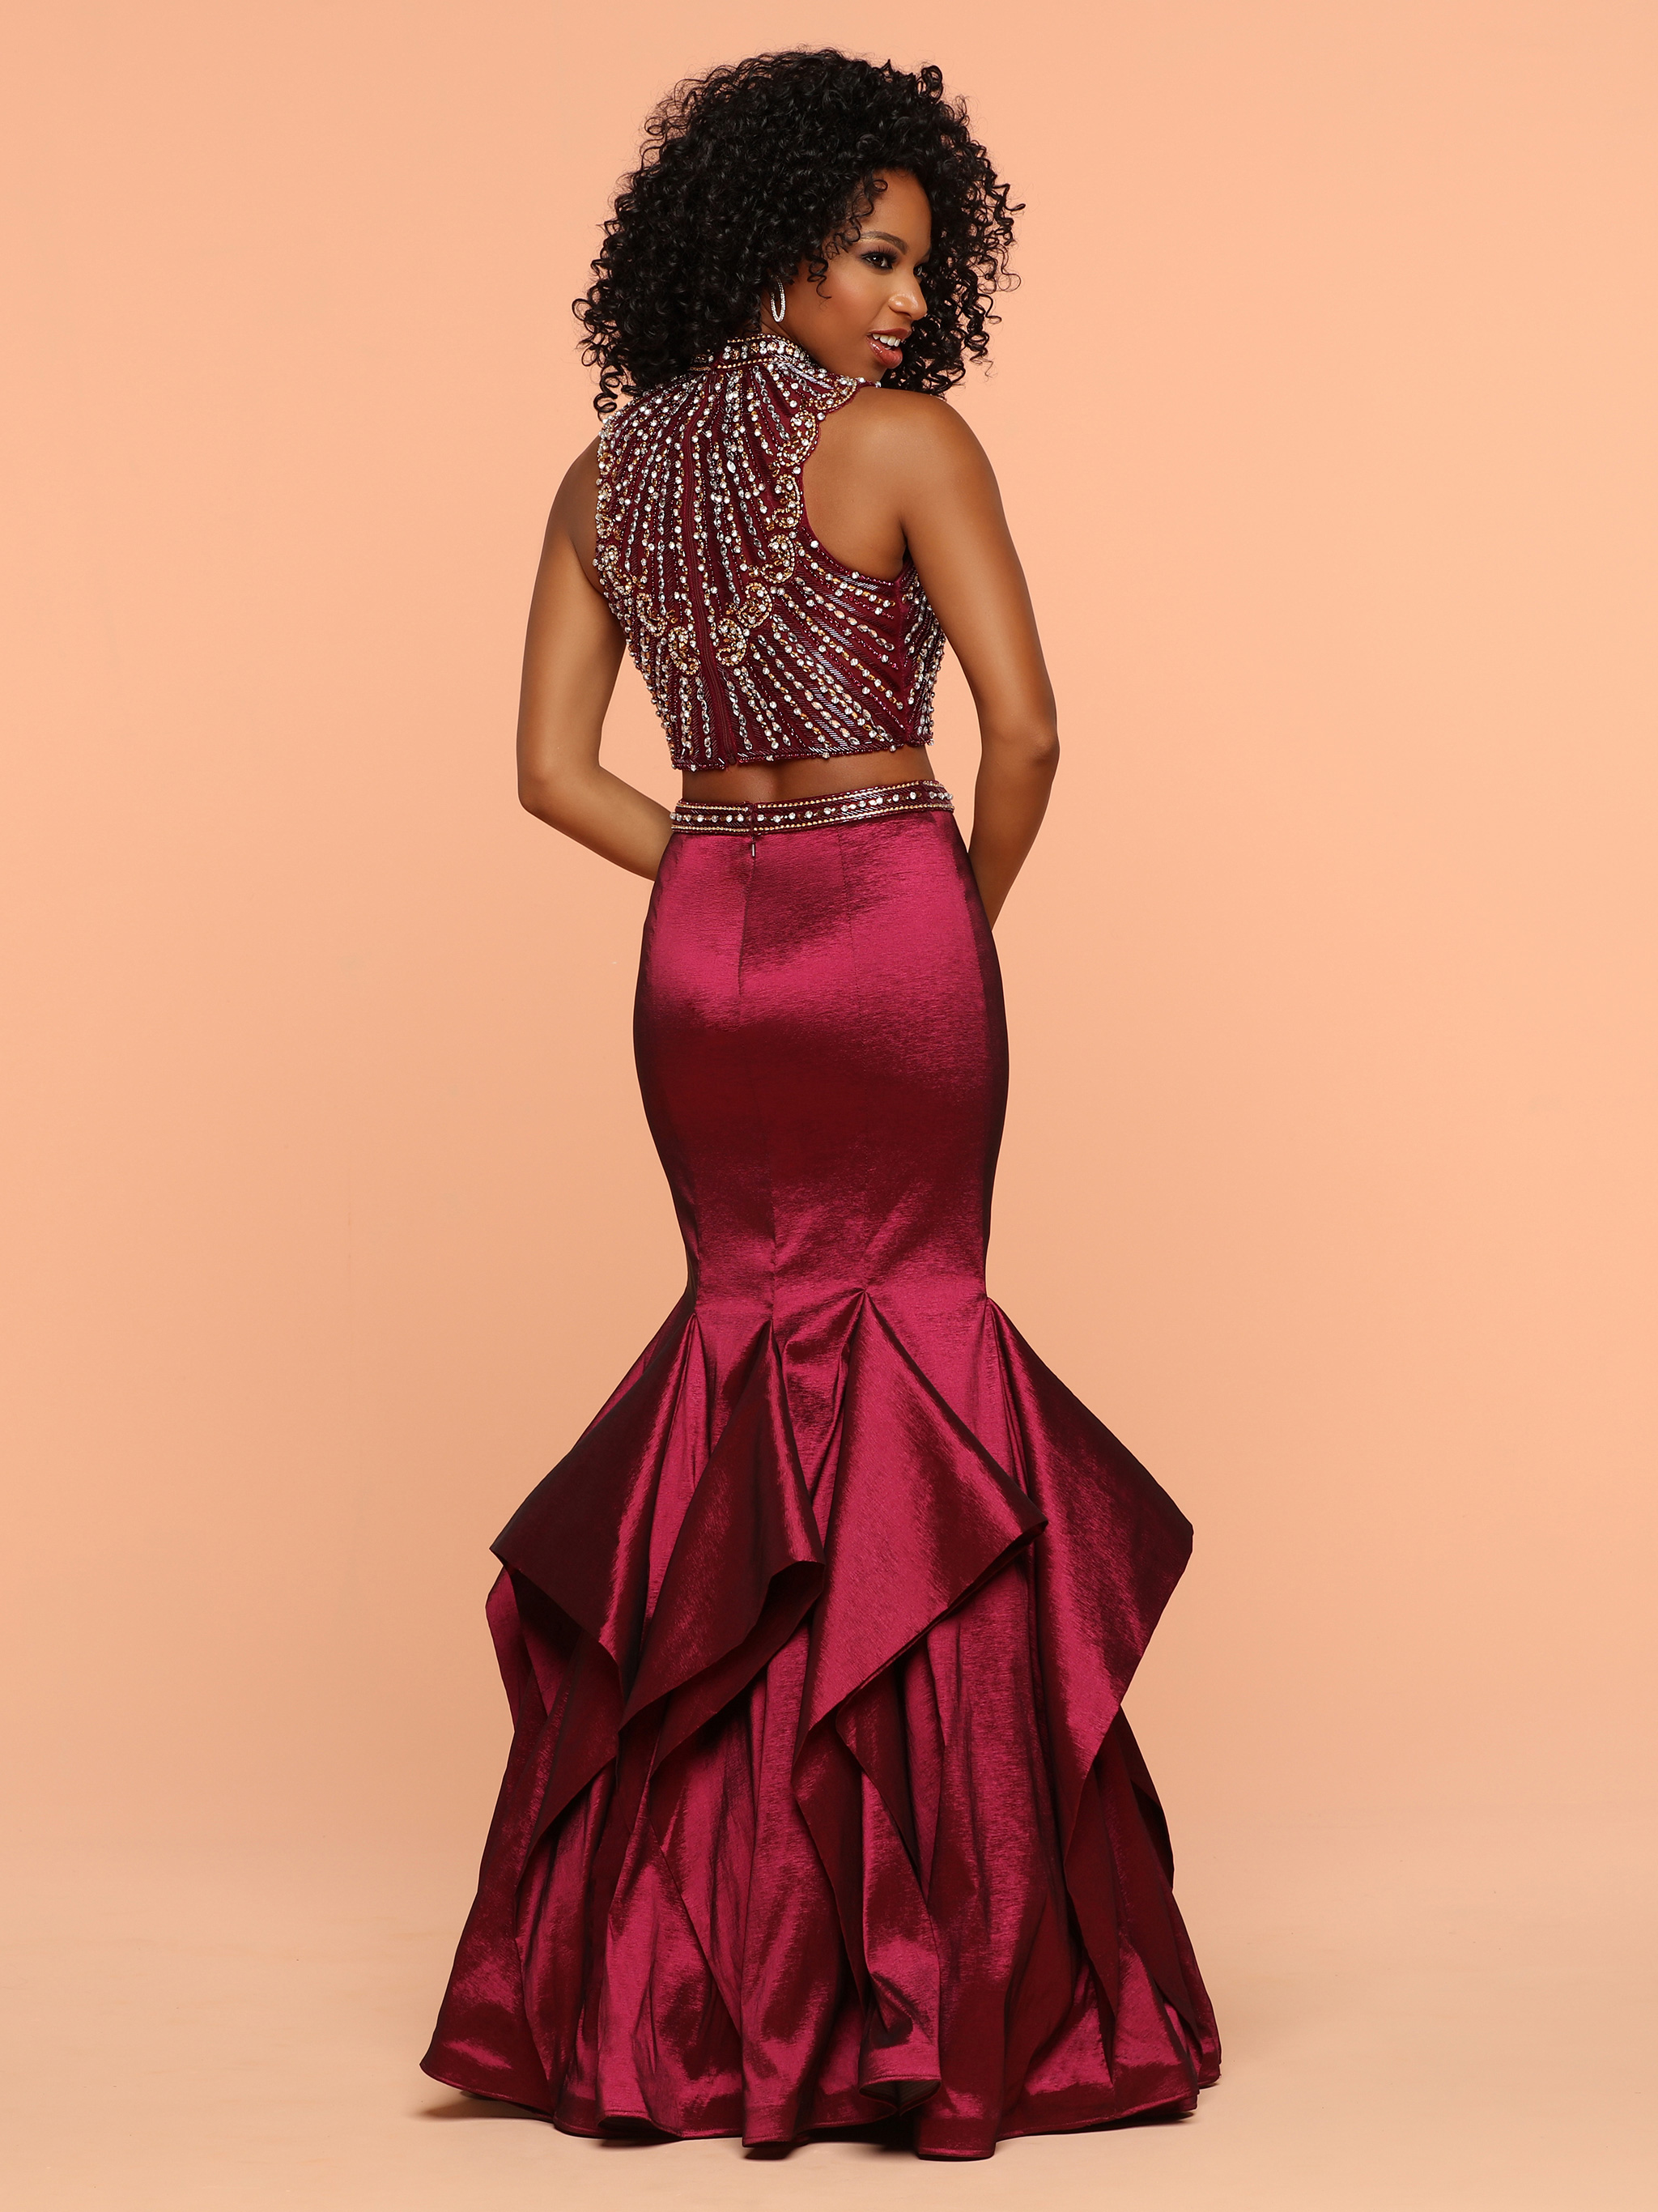 Image showing back view of style #71827